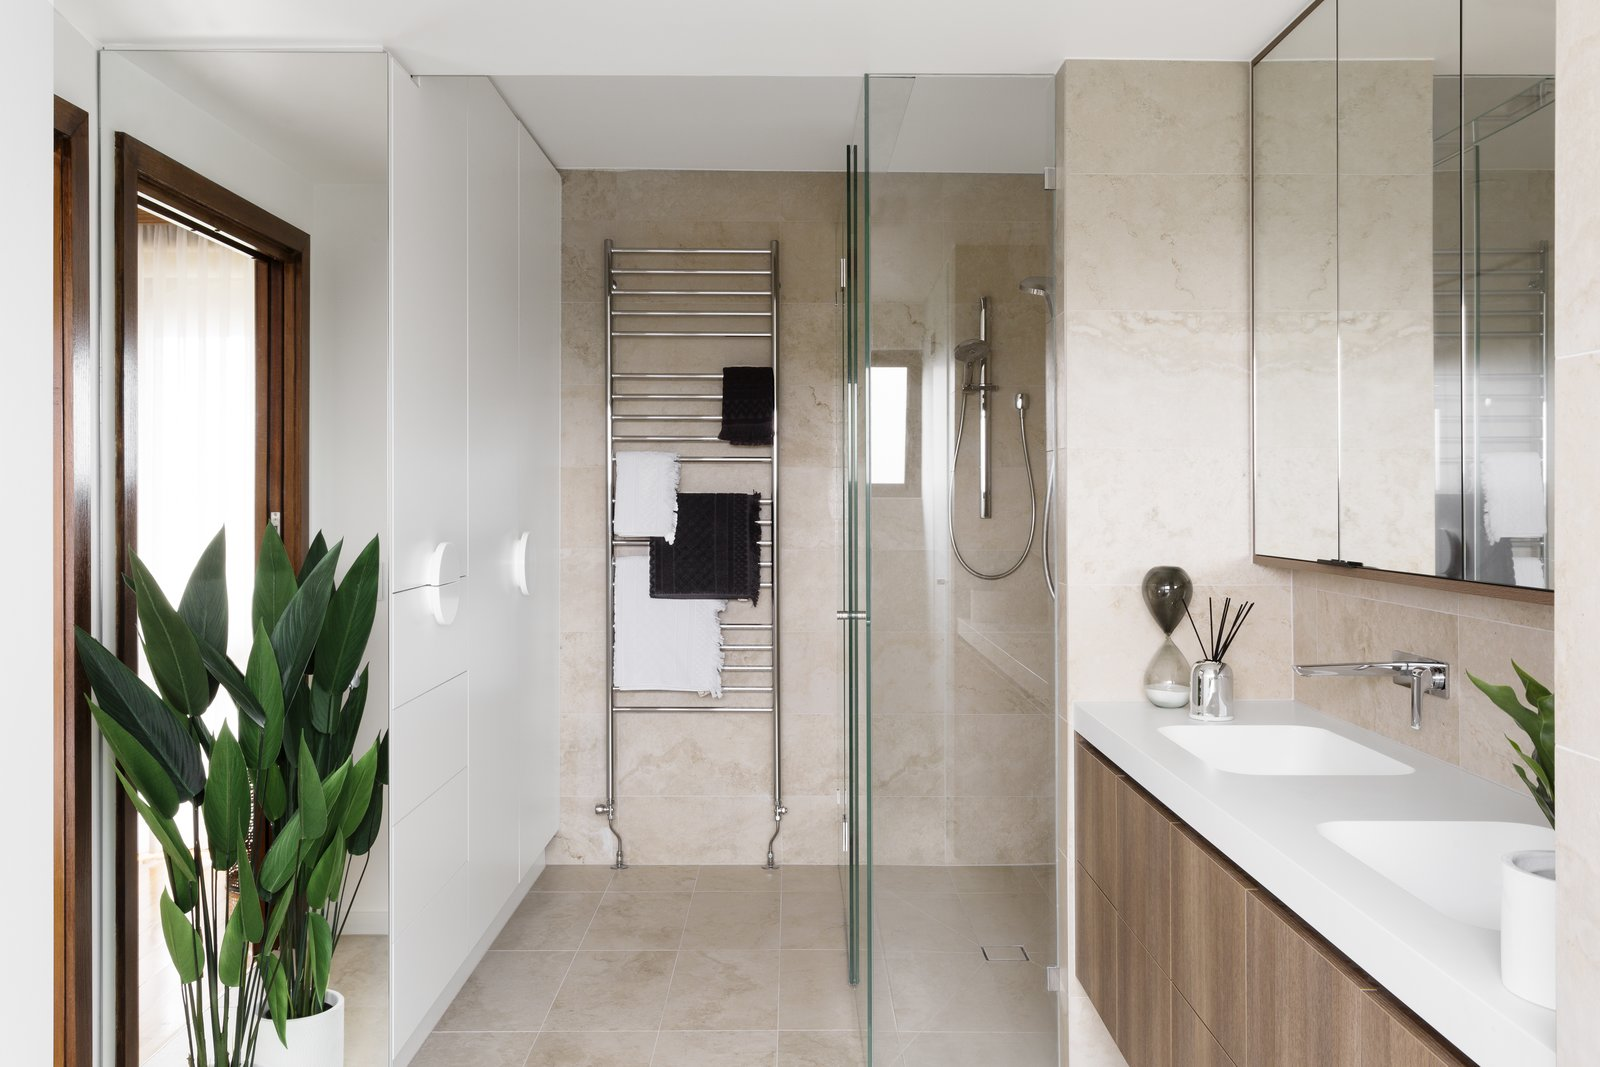 Bath Room, Engineered Quartz Counter, Enclosed Shower, Porcelain Tile Wall, Porcelain Tile Floor, and Undermount Sink  Photo 4 of 8 in 6 Insider Tips For Bathroom Design From the Experts